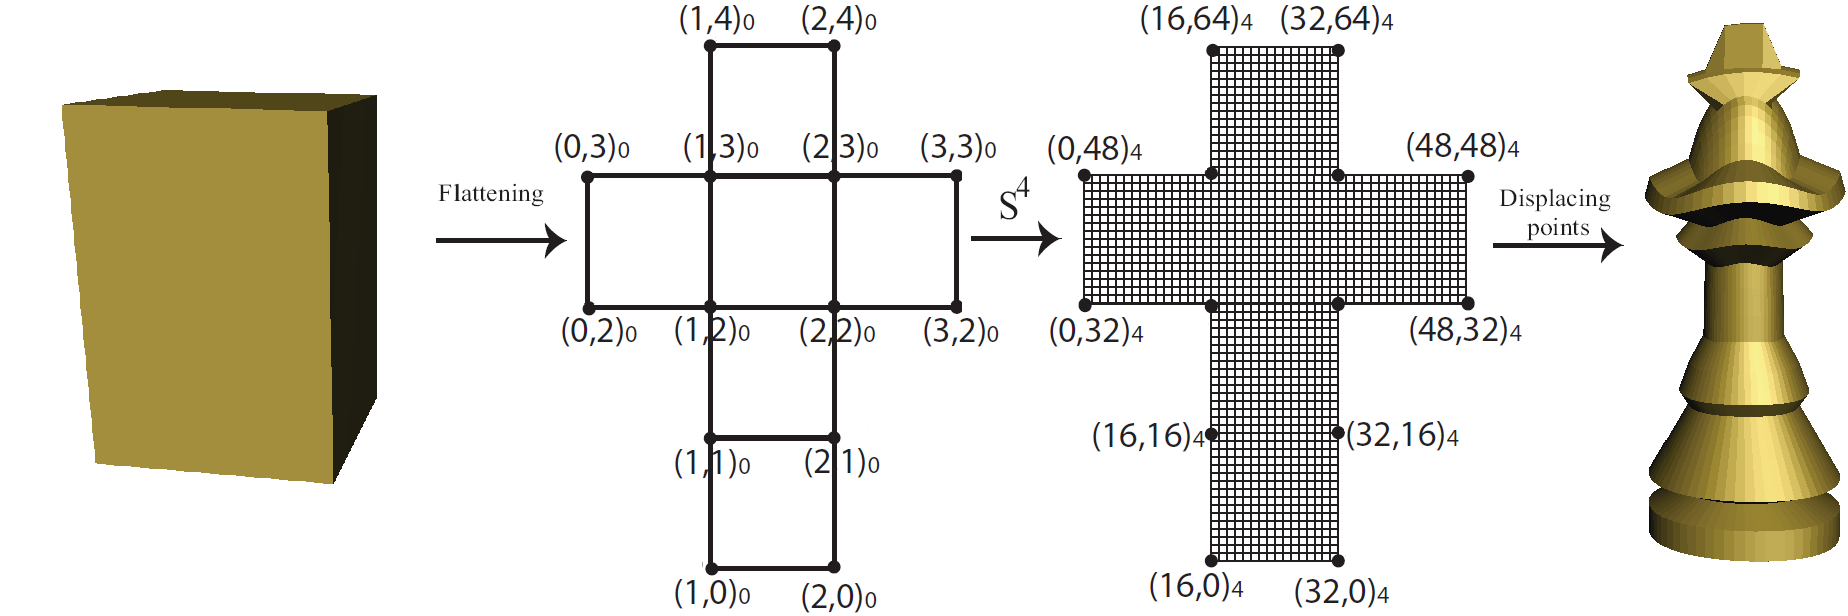 The initial cube�s connectivity map and its subdivided version. The cube's vertices are manipulated and a chess piece is obtained. The connectivity map's indices are shown beside them. (a,b)_r indicates the vertex with index (a,b) at resolution r.